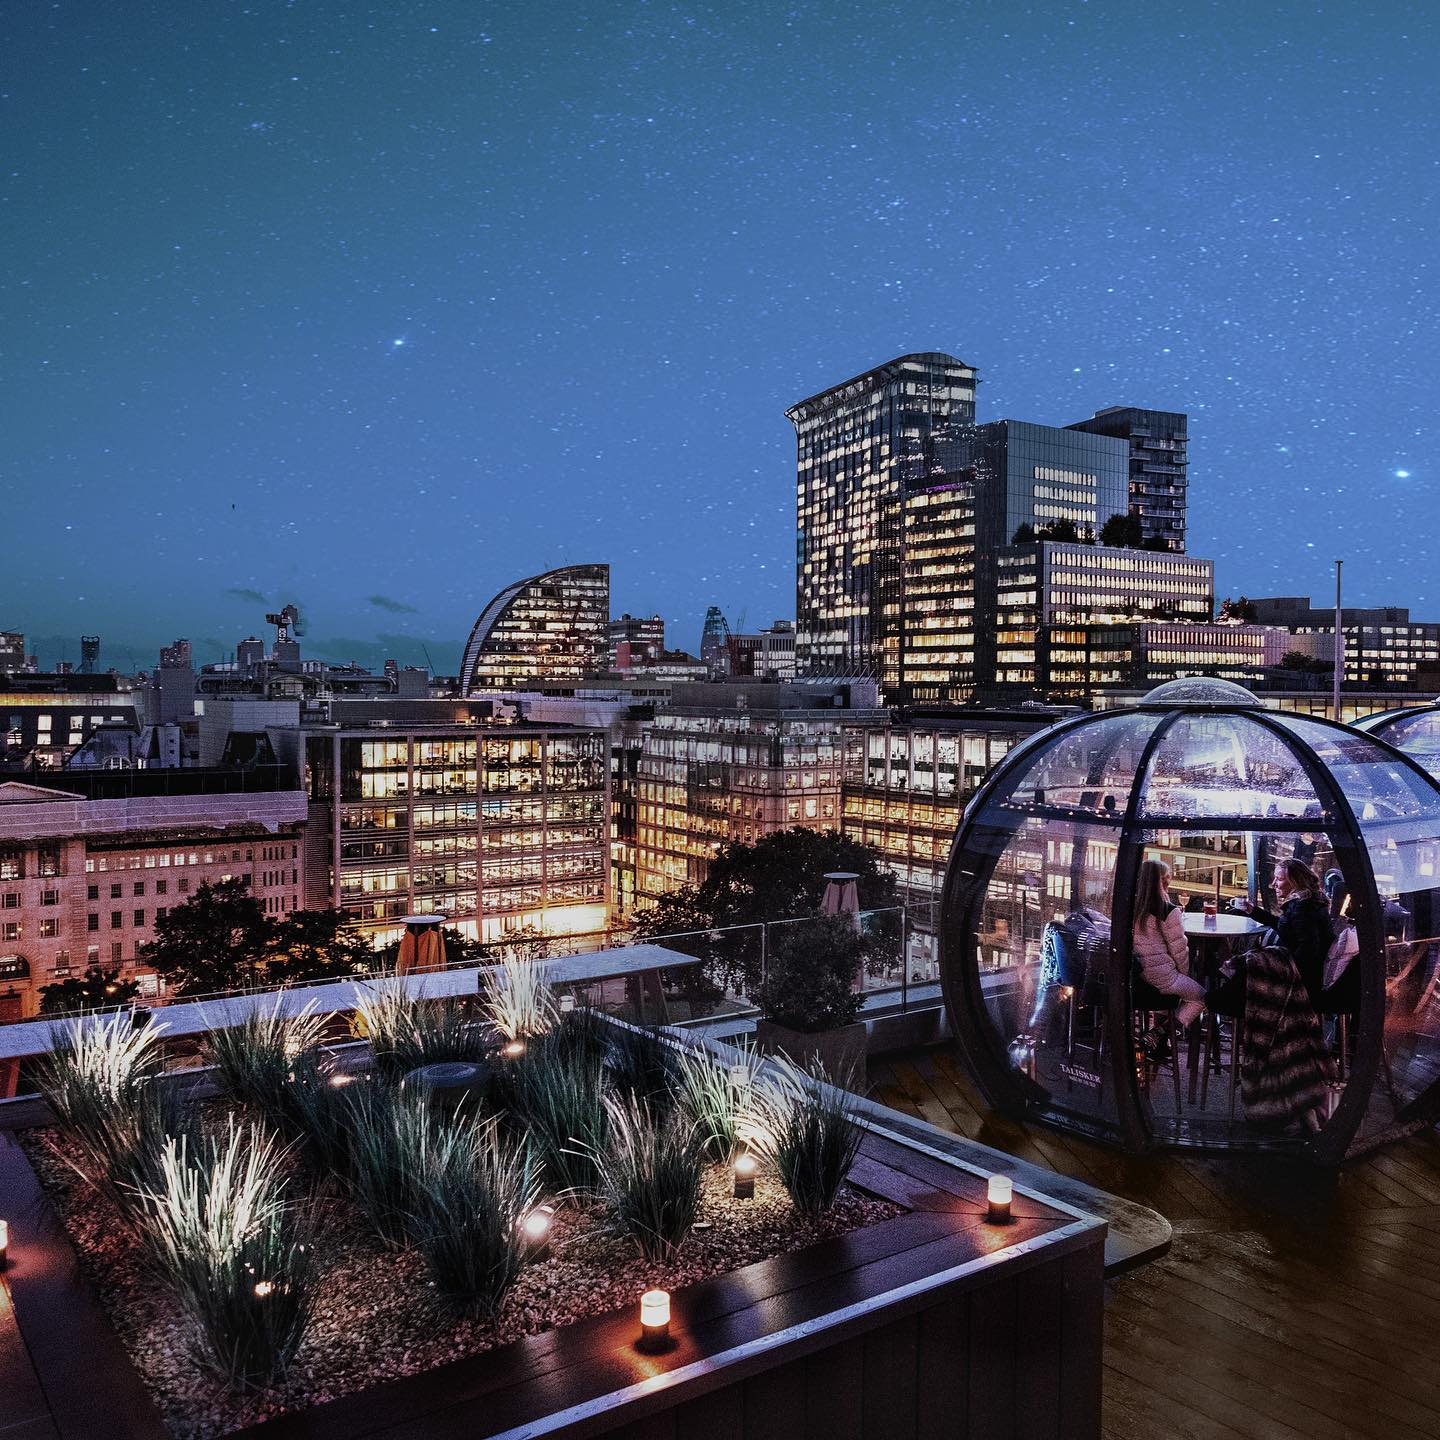 Igloo experience things to do in London at Christmas winter rooftop bar London